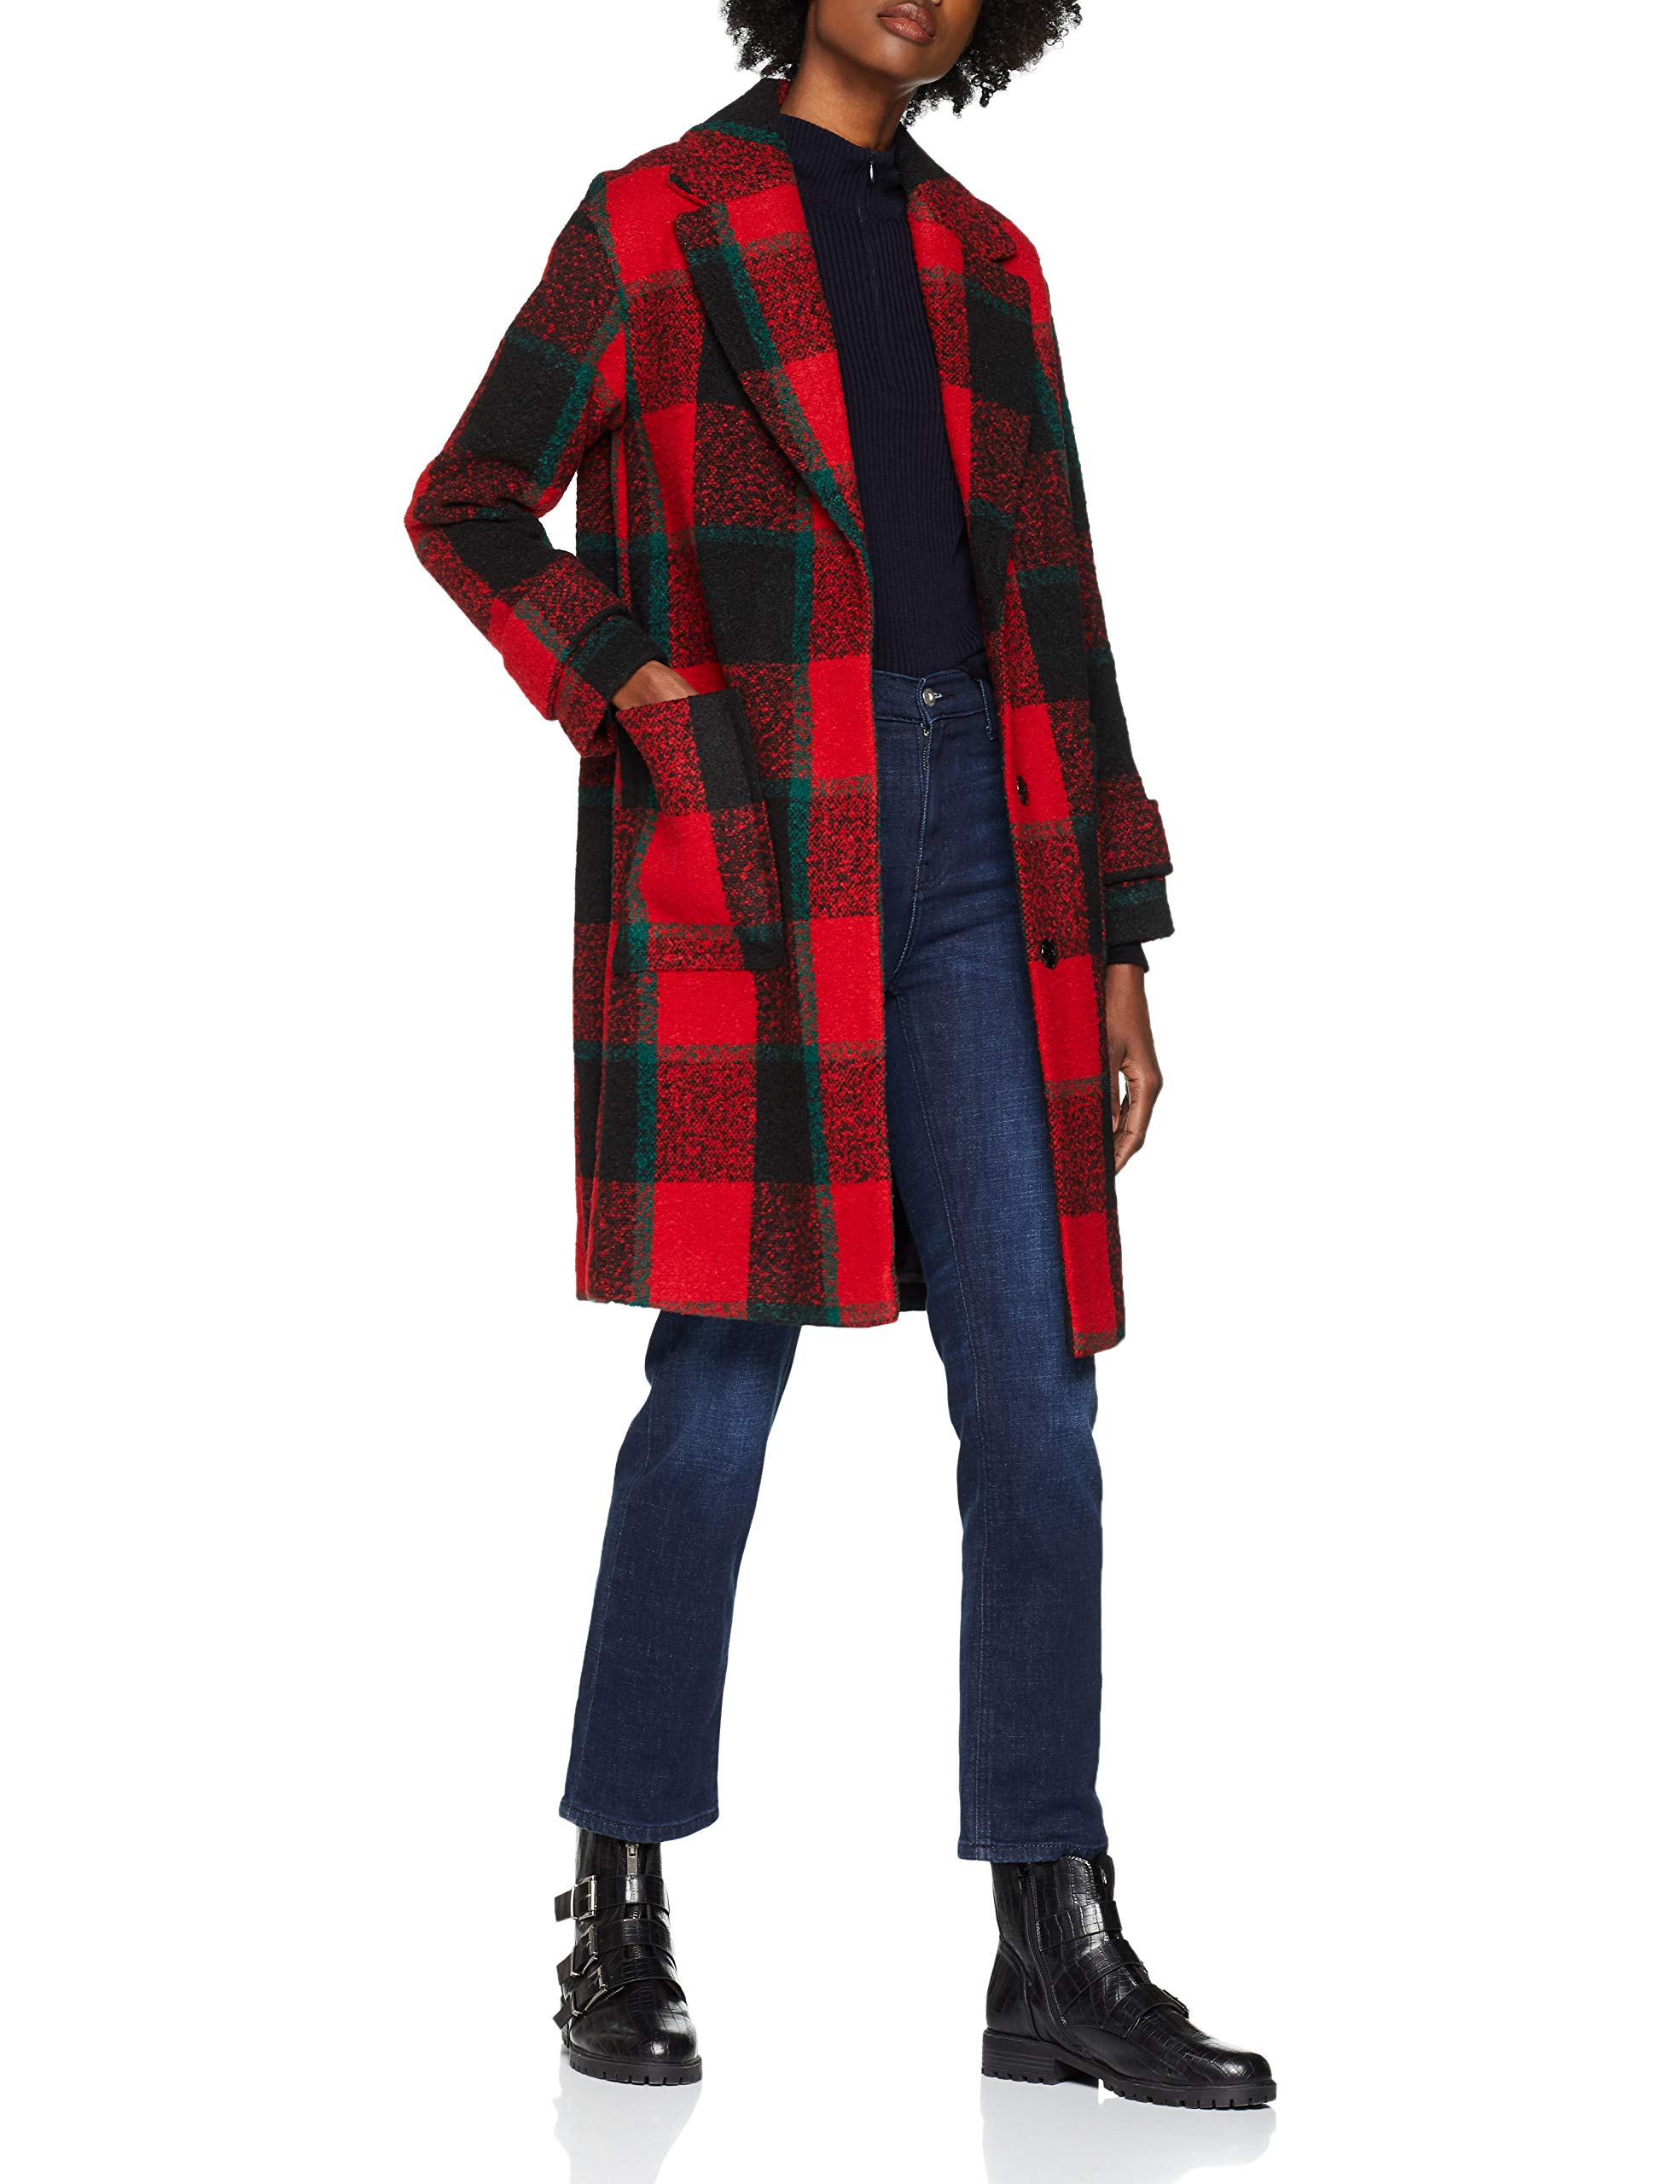 5951294 ManteauRougered 6938taille New Look Toronto Blanket Pattern Fabricant10Femme zVMqSUpGL